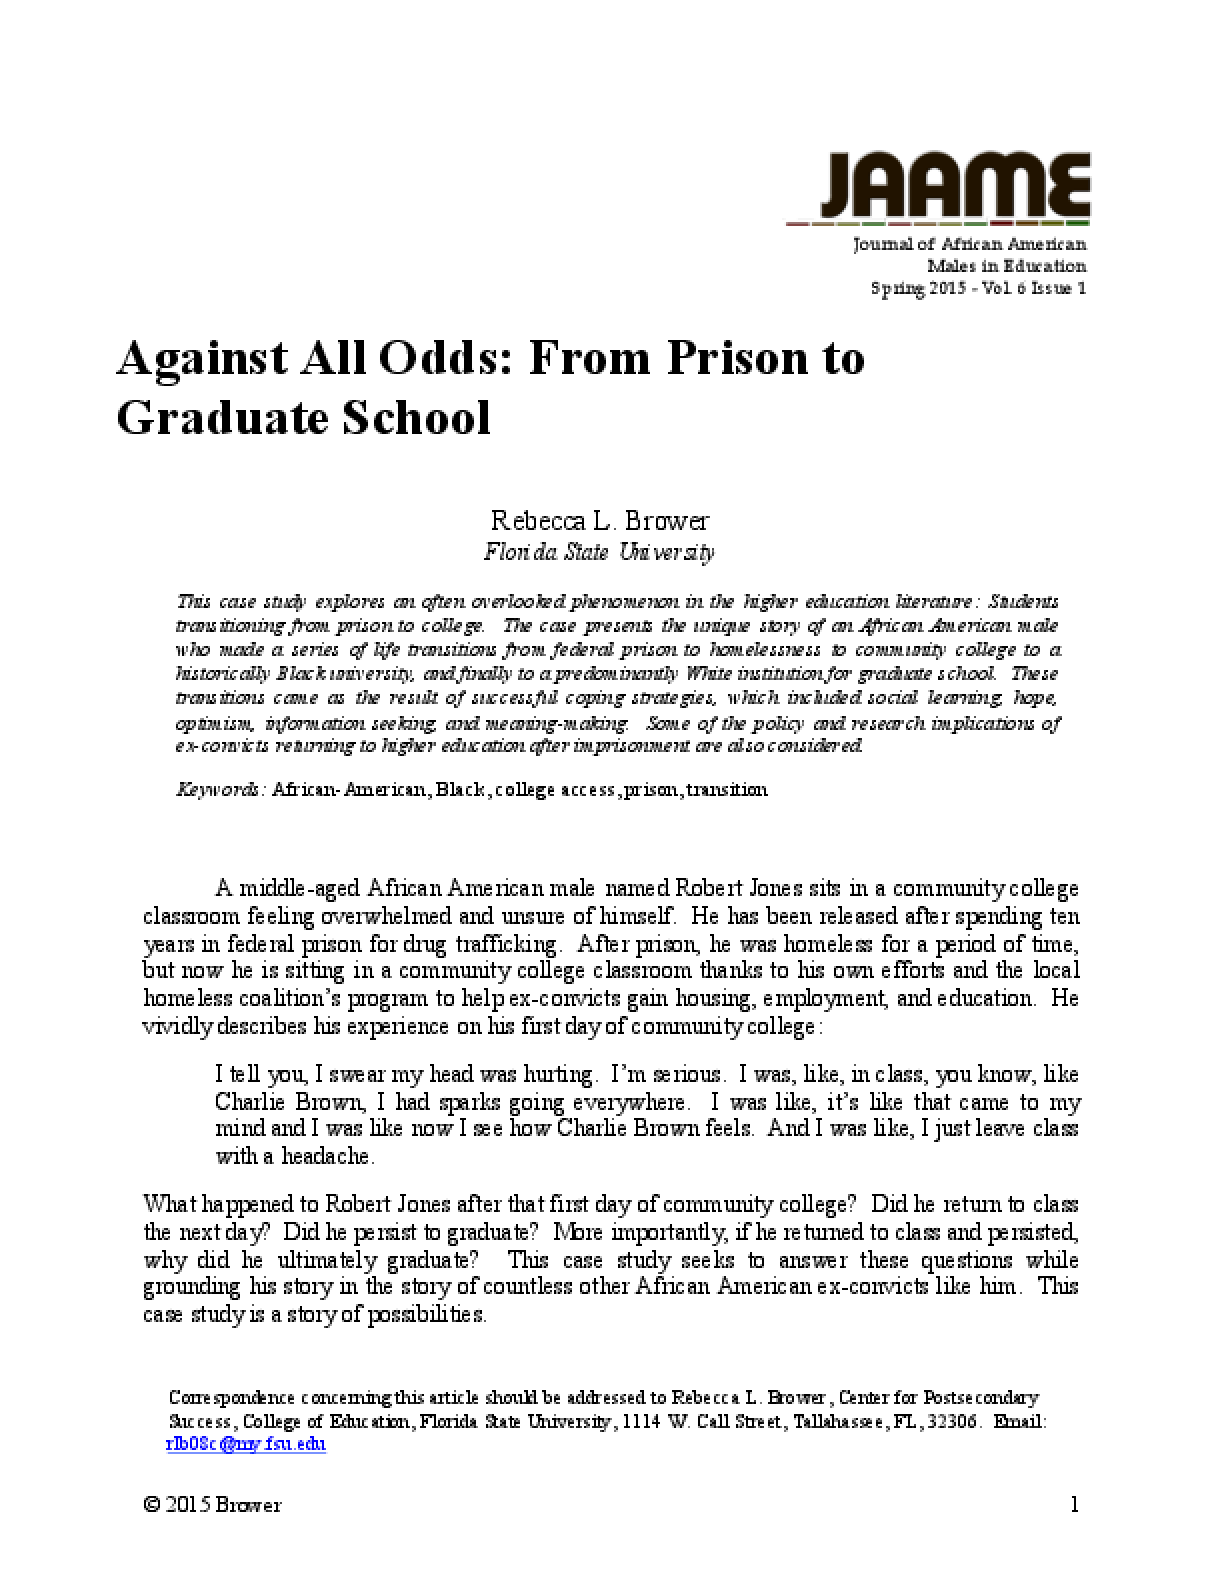 Against All Odds: From Prison to Graduate School